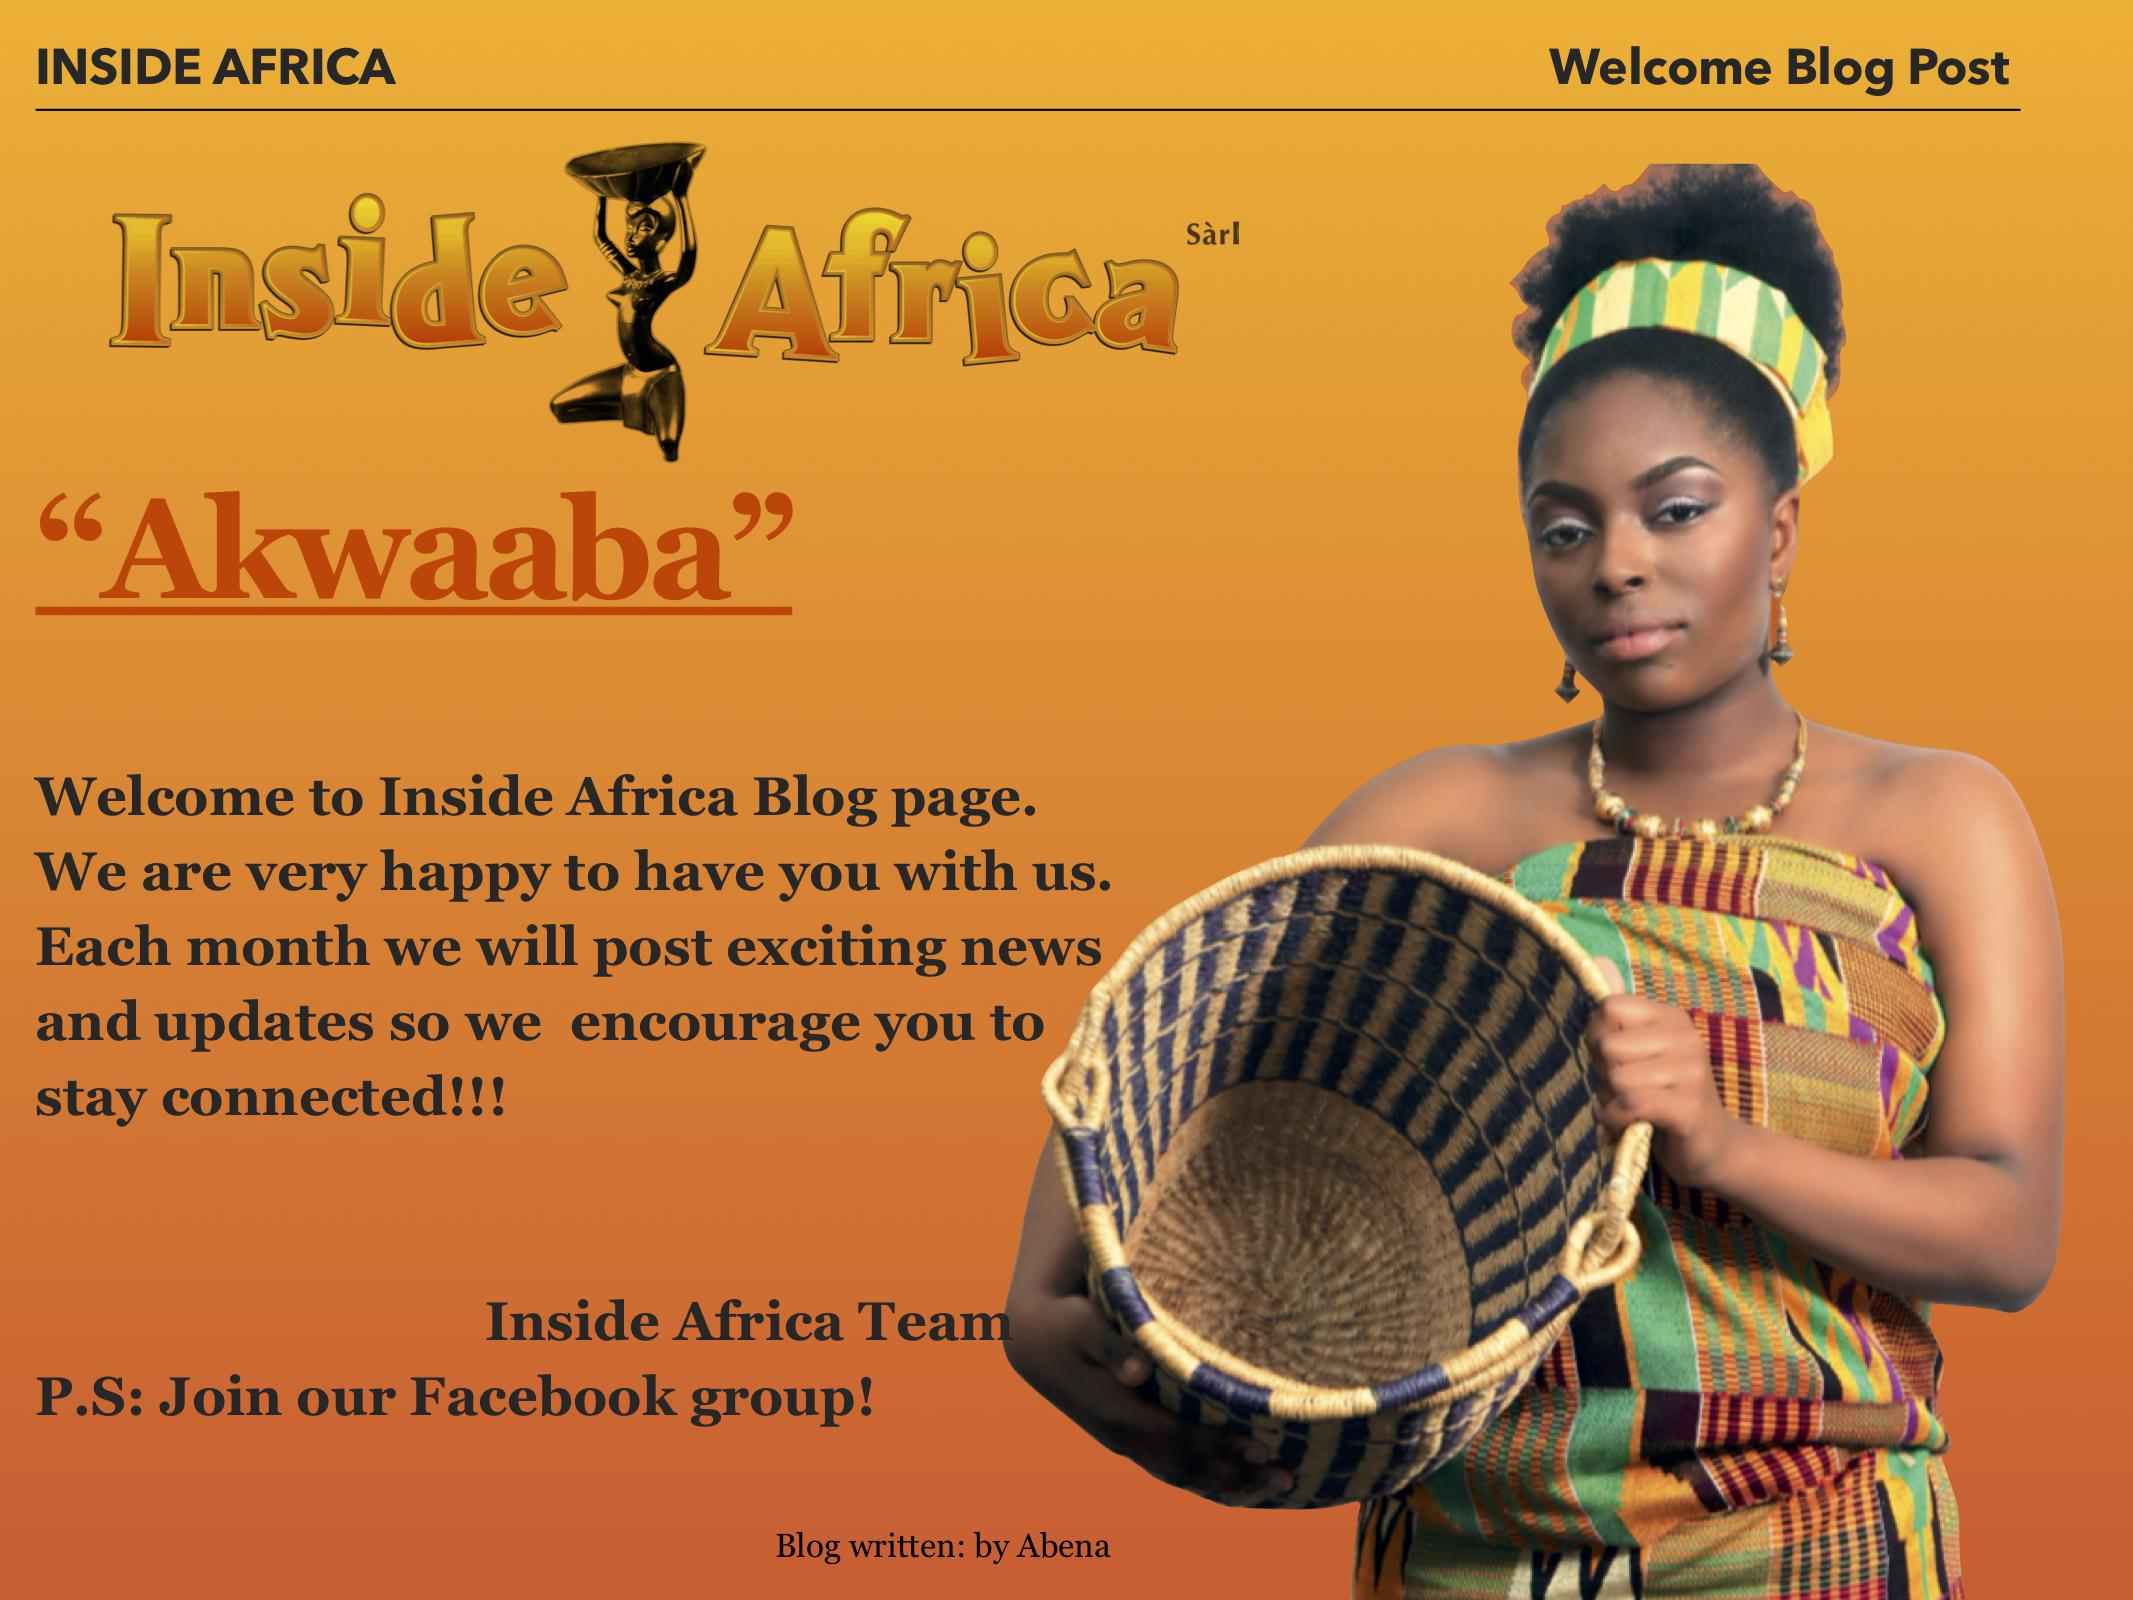 Welcome message form Inside Africa